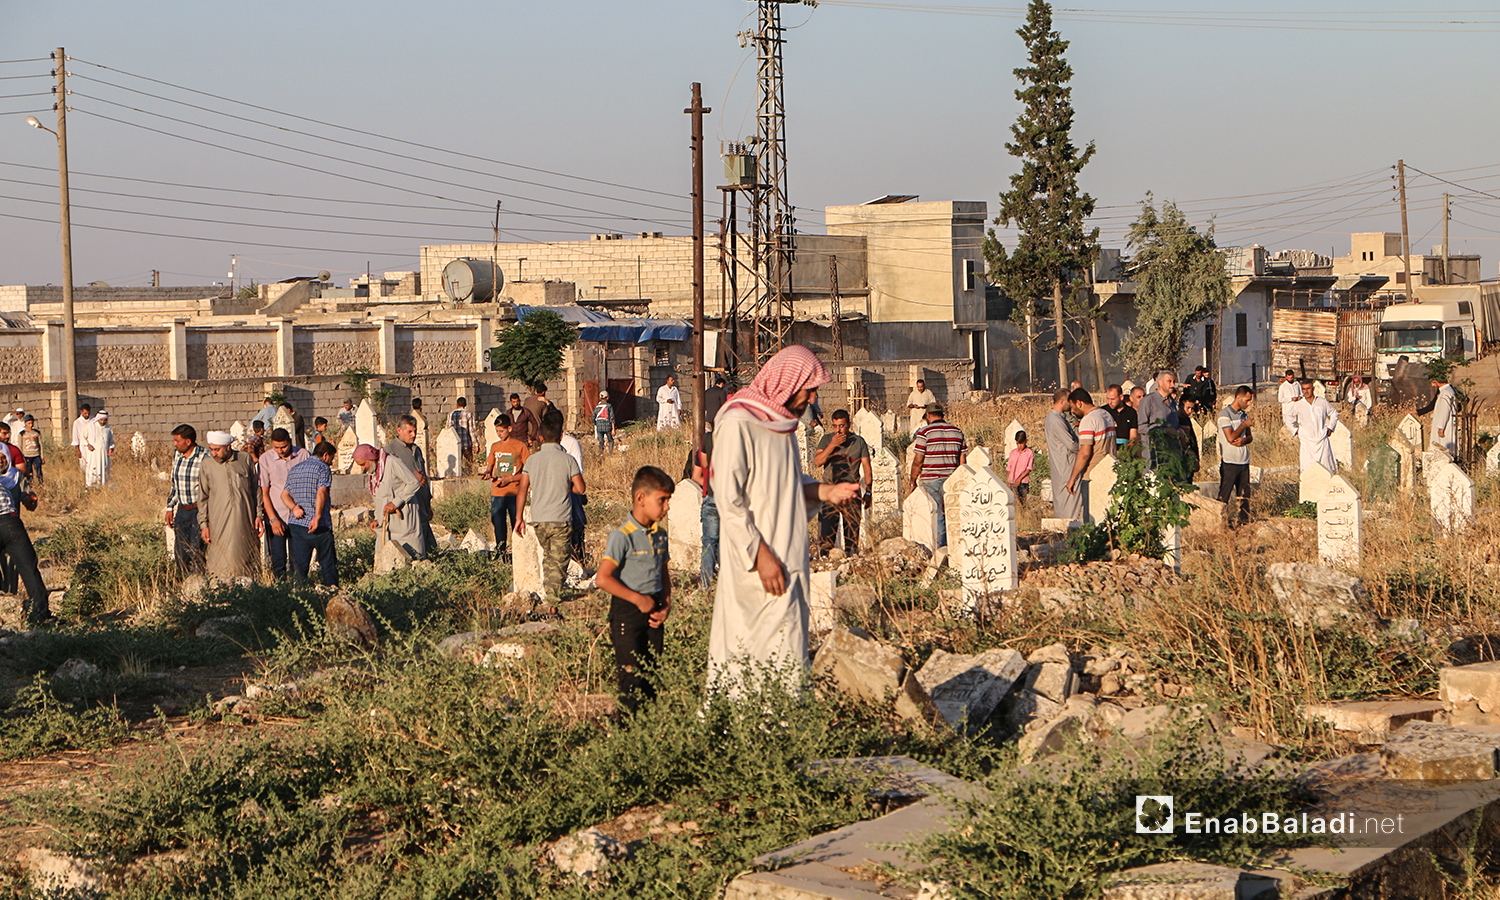 The residents of Dabiq town in northern Aleppo countryside visiting their relatives' graves in the first day of Eid al-Adha – 31 July 2020 (Enab Baladi / Abdul Salam Majan)